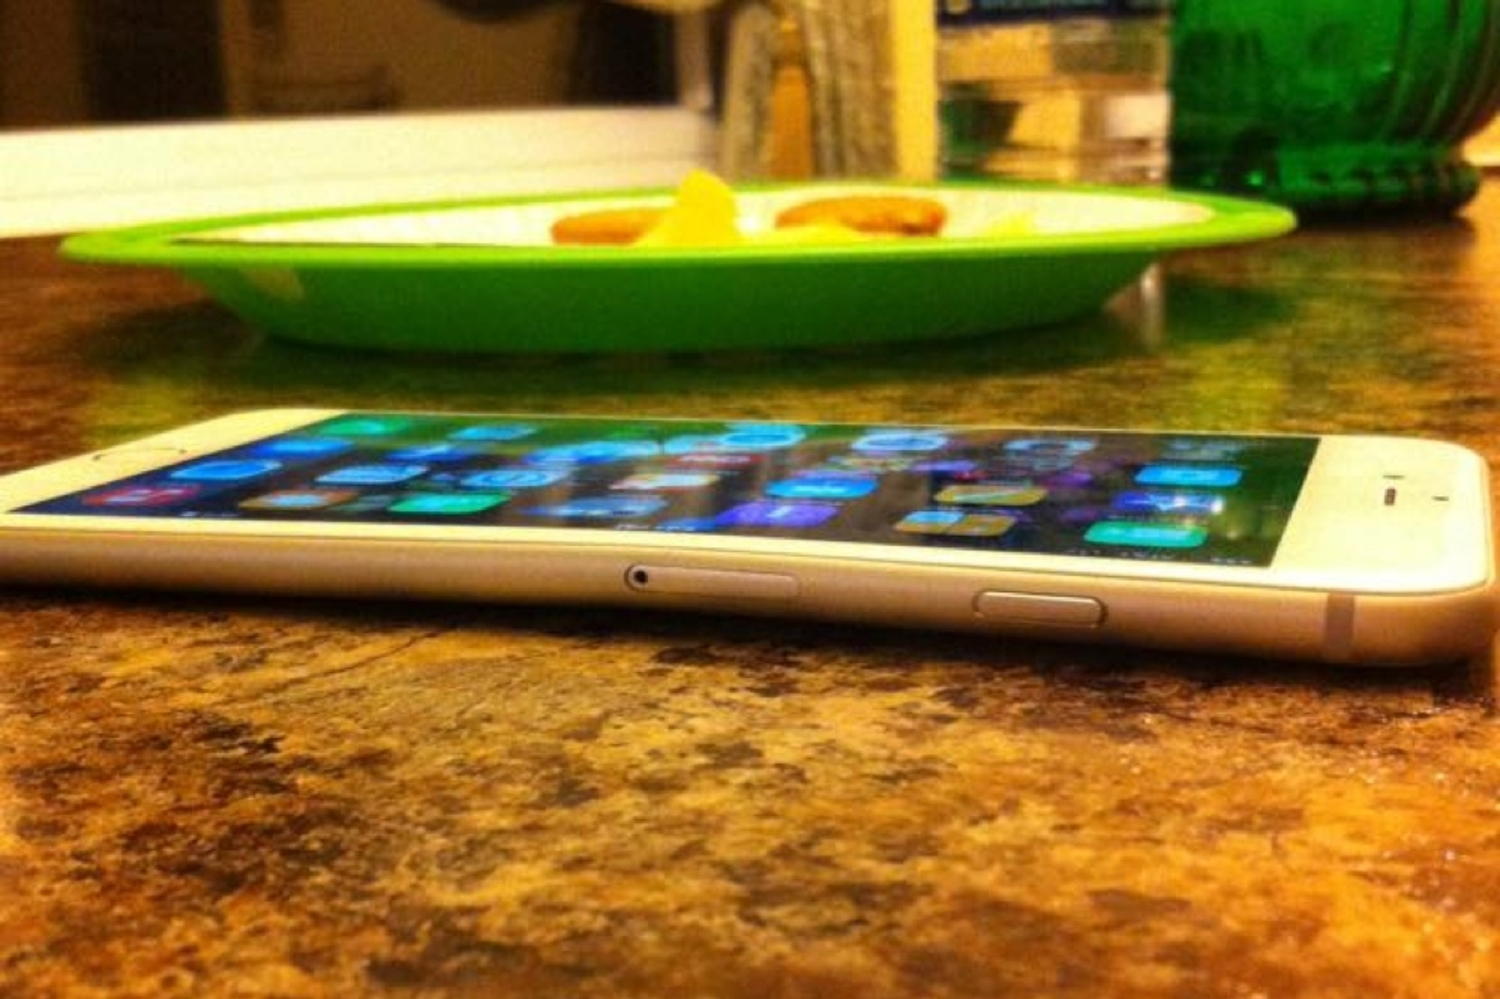 Tech Giants Troll Apple Over #BendGate